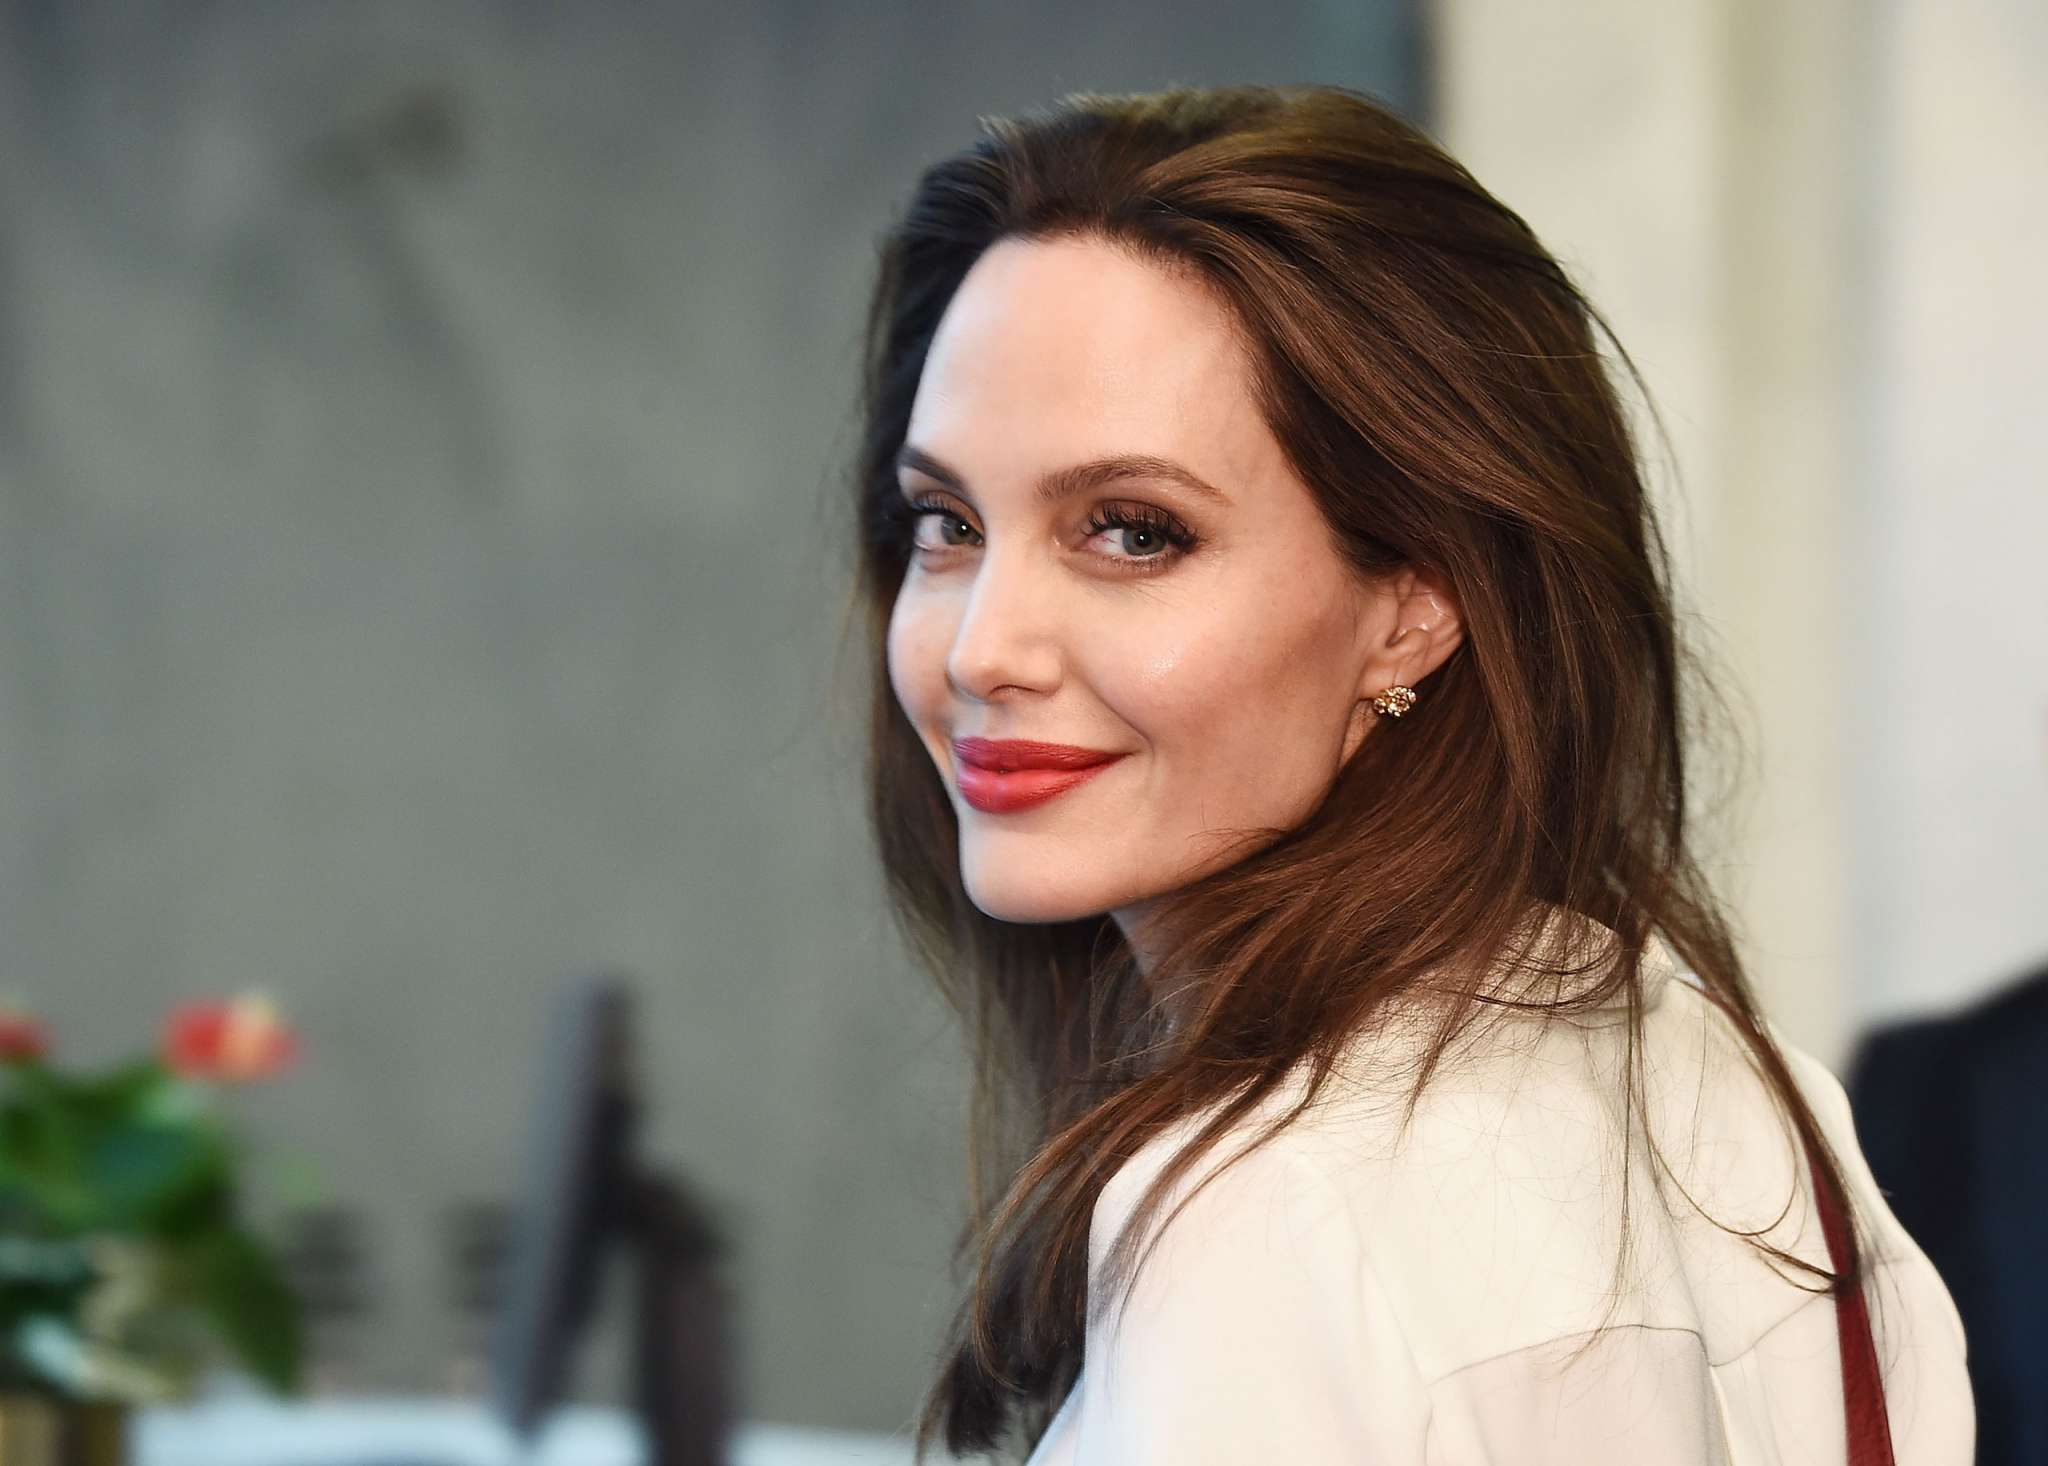 Is Angelina Jolie Looking For Love With Men And Women On Dating Apps Now That She's Moved On From Brad Pitt?